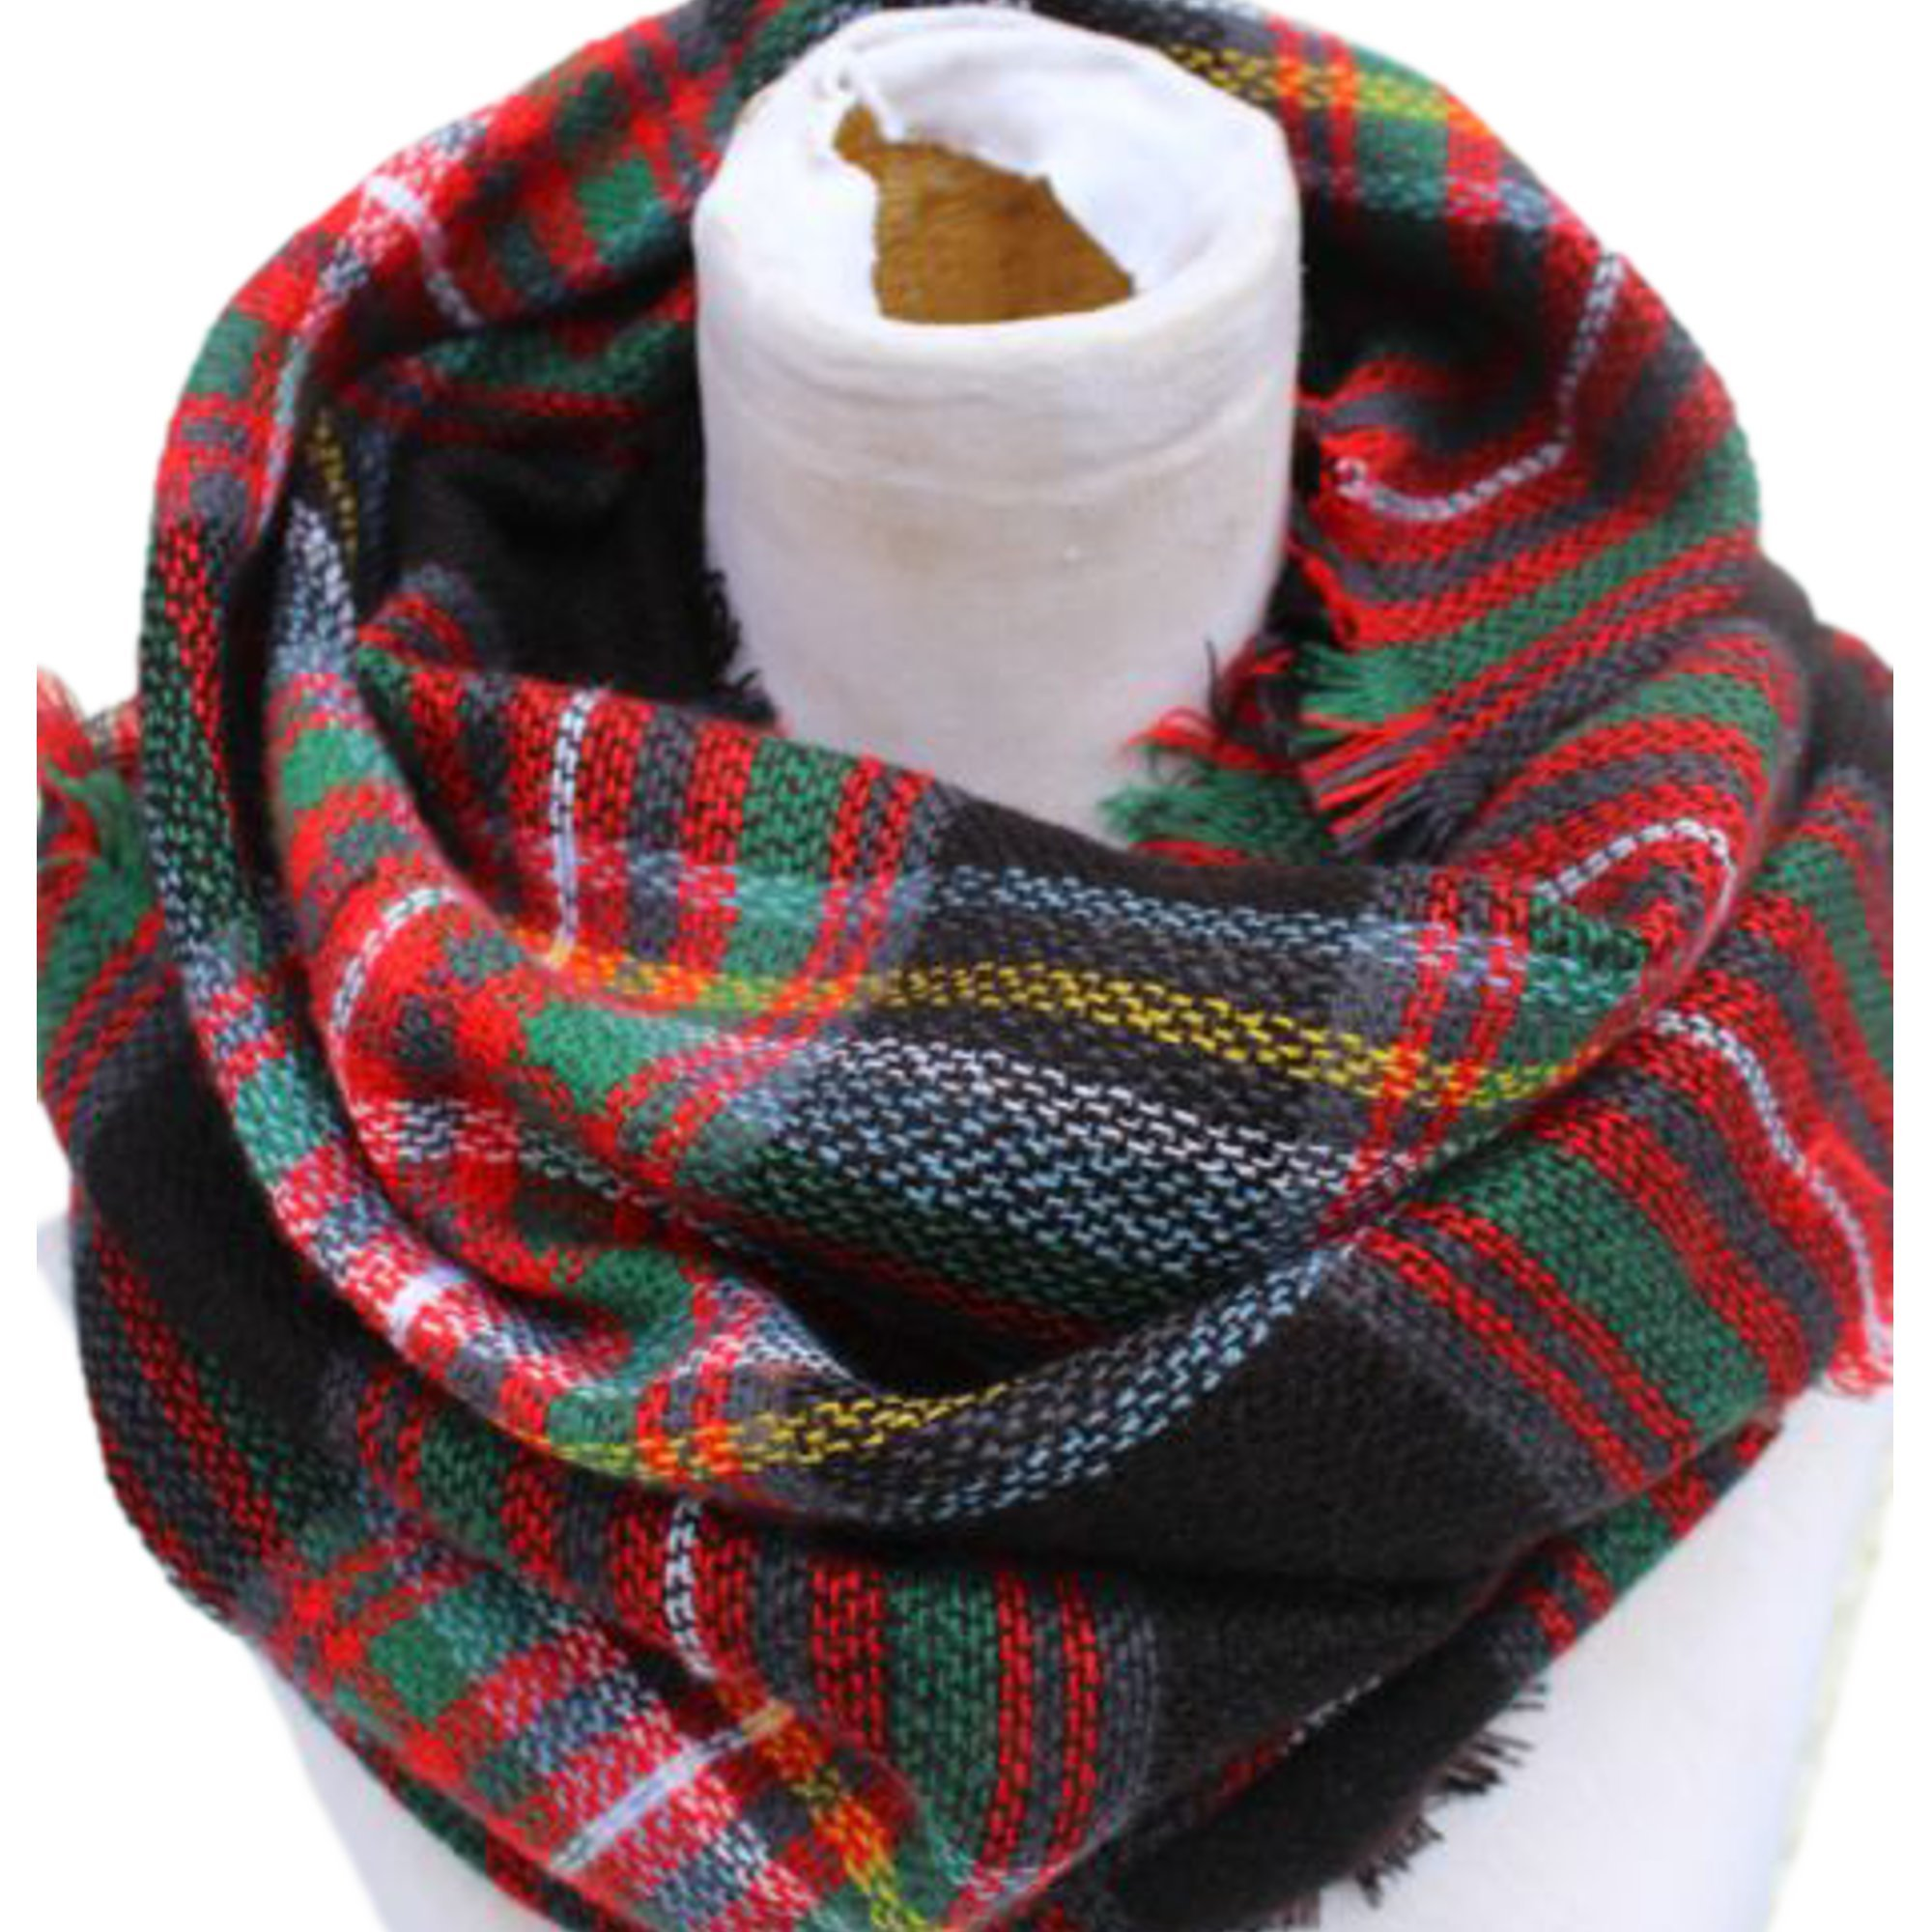 Epic Brand Infinity Scarf Collection for Men and Women   Comfortable Plaid Tartan Cashmere Blanket Circle Winter Scarves (Plaid Navy Blue/Red)